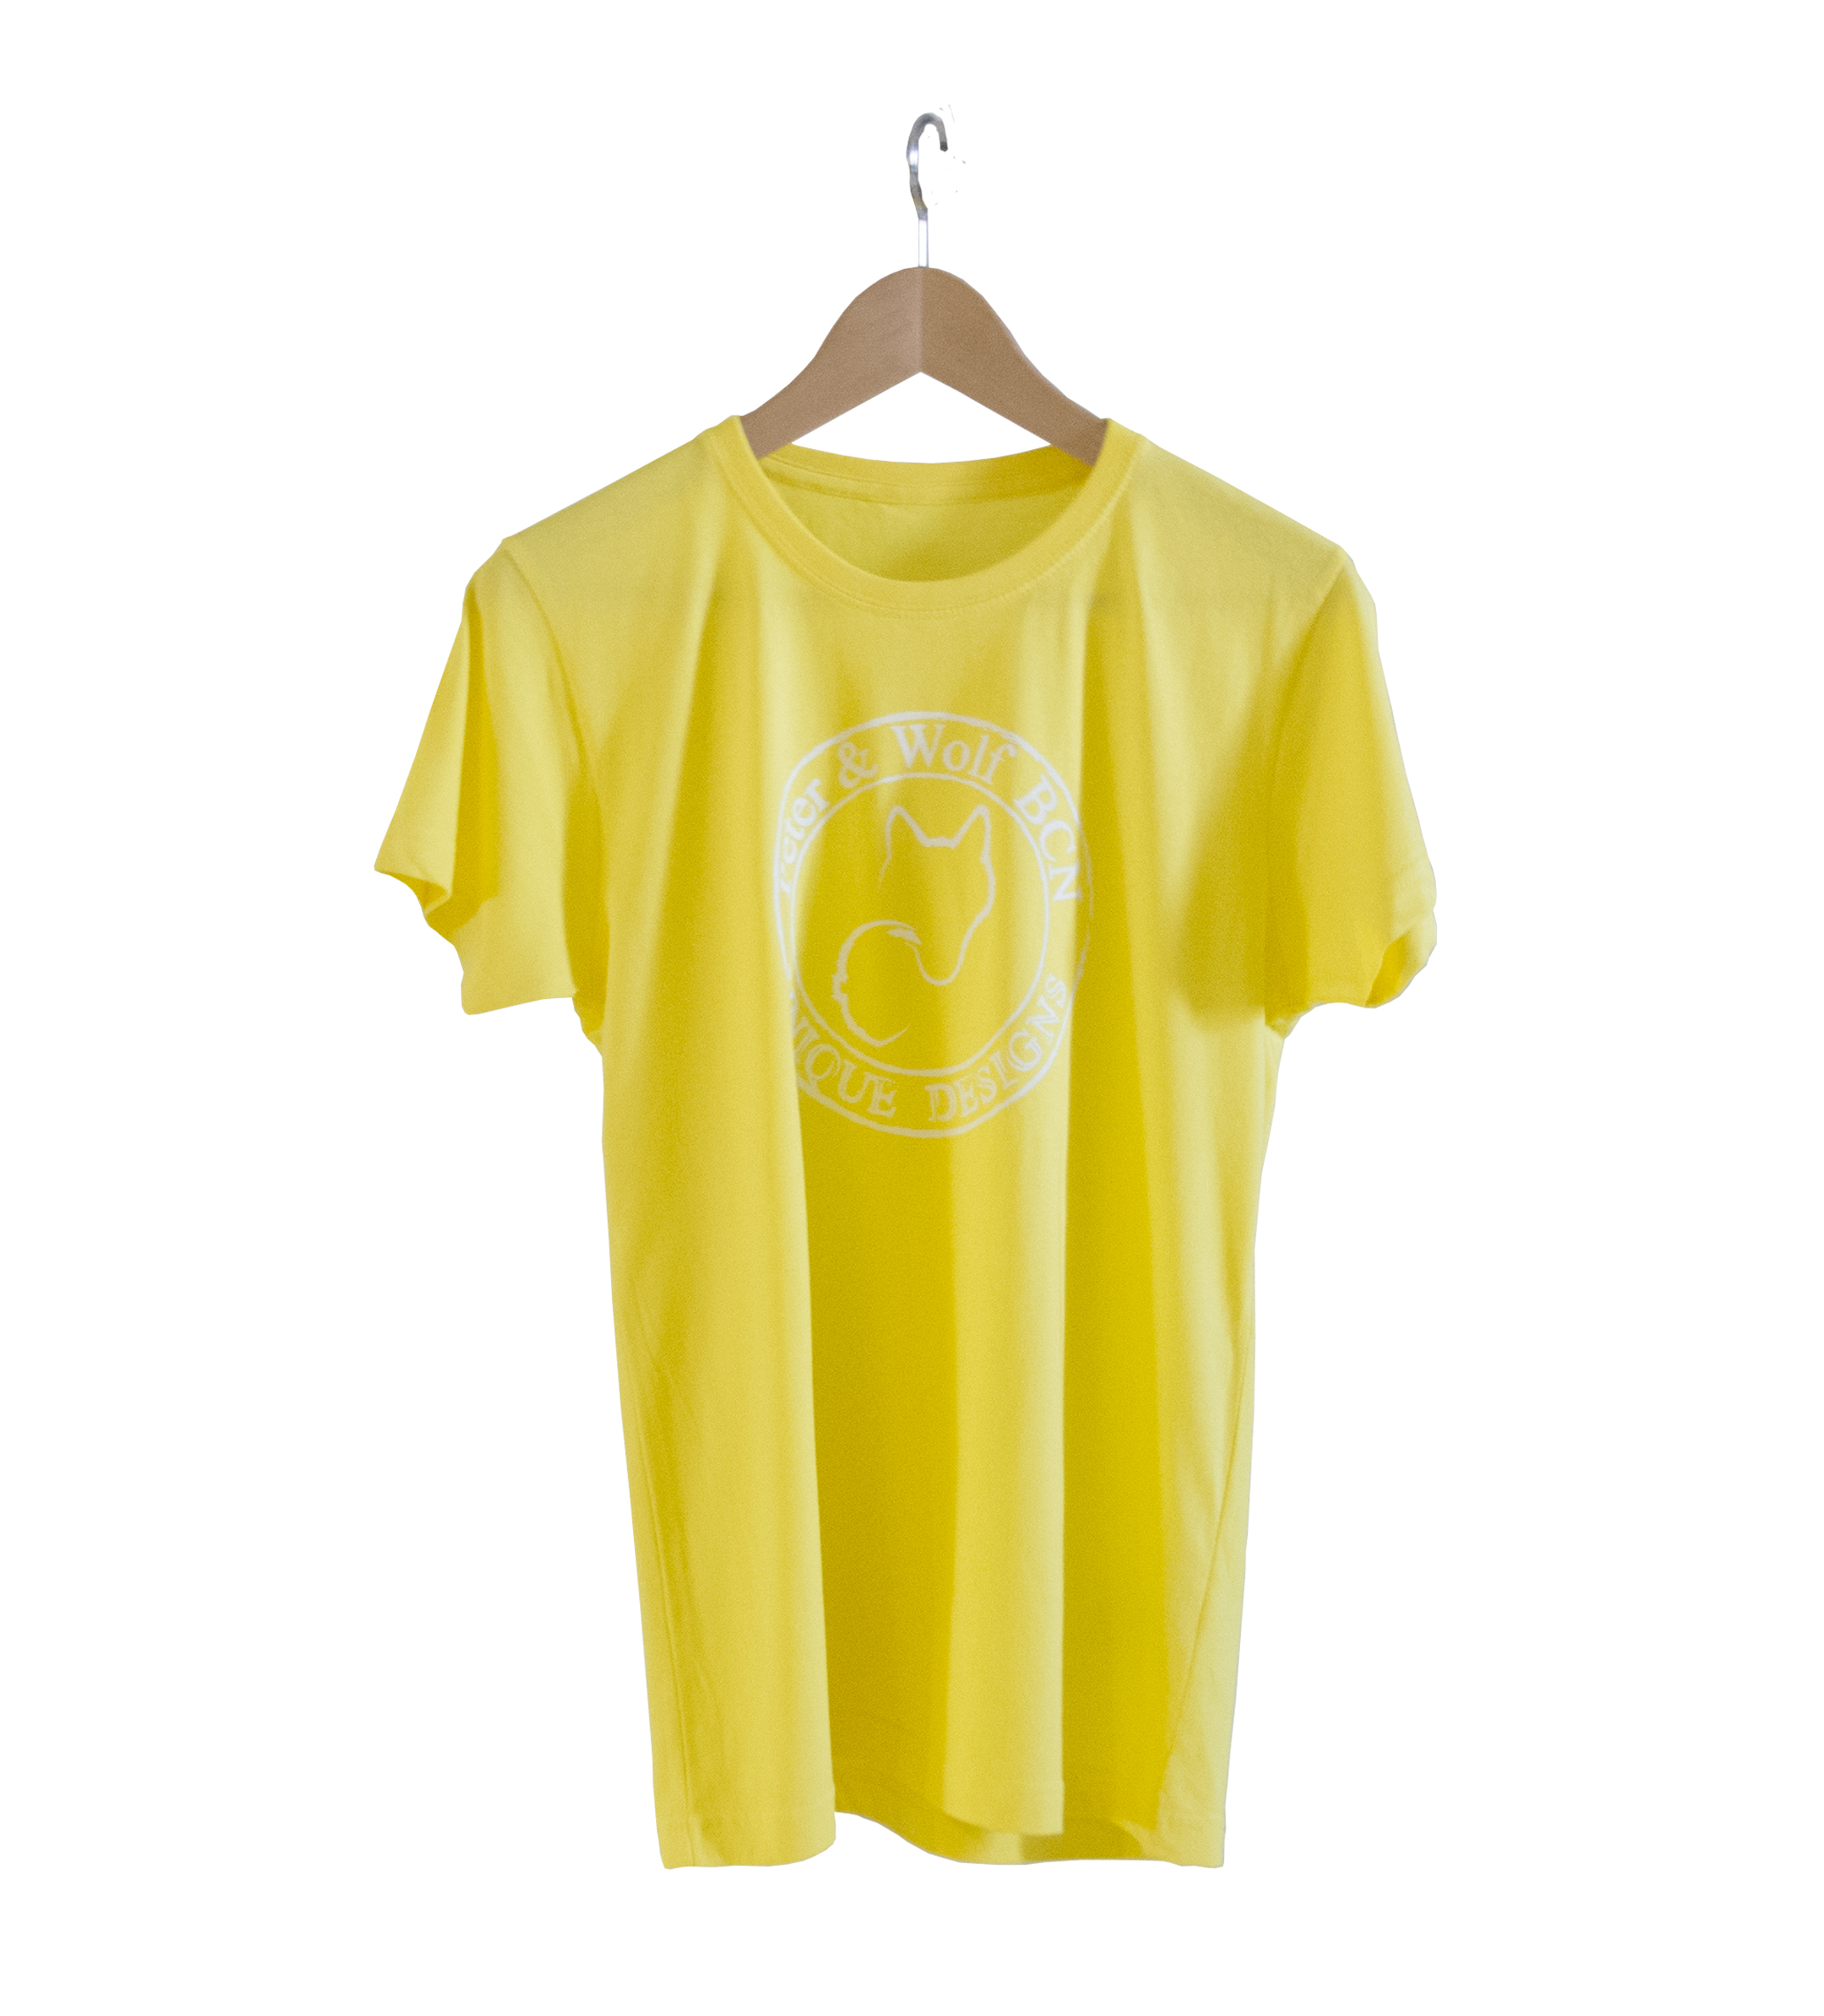 yellow_tshirt_w_stamp_2